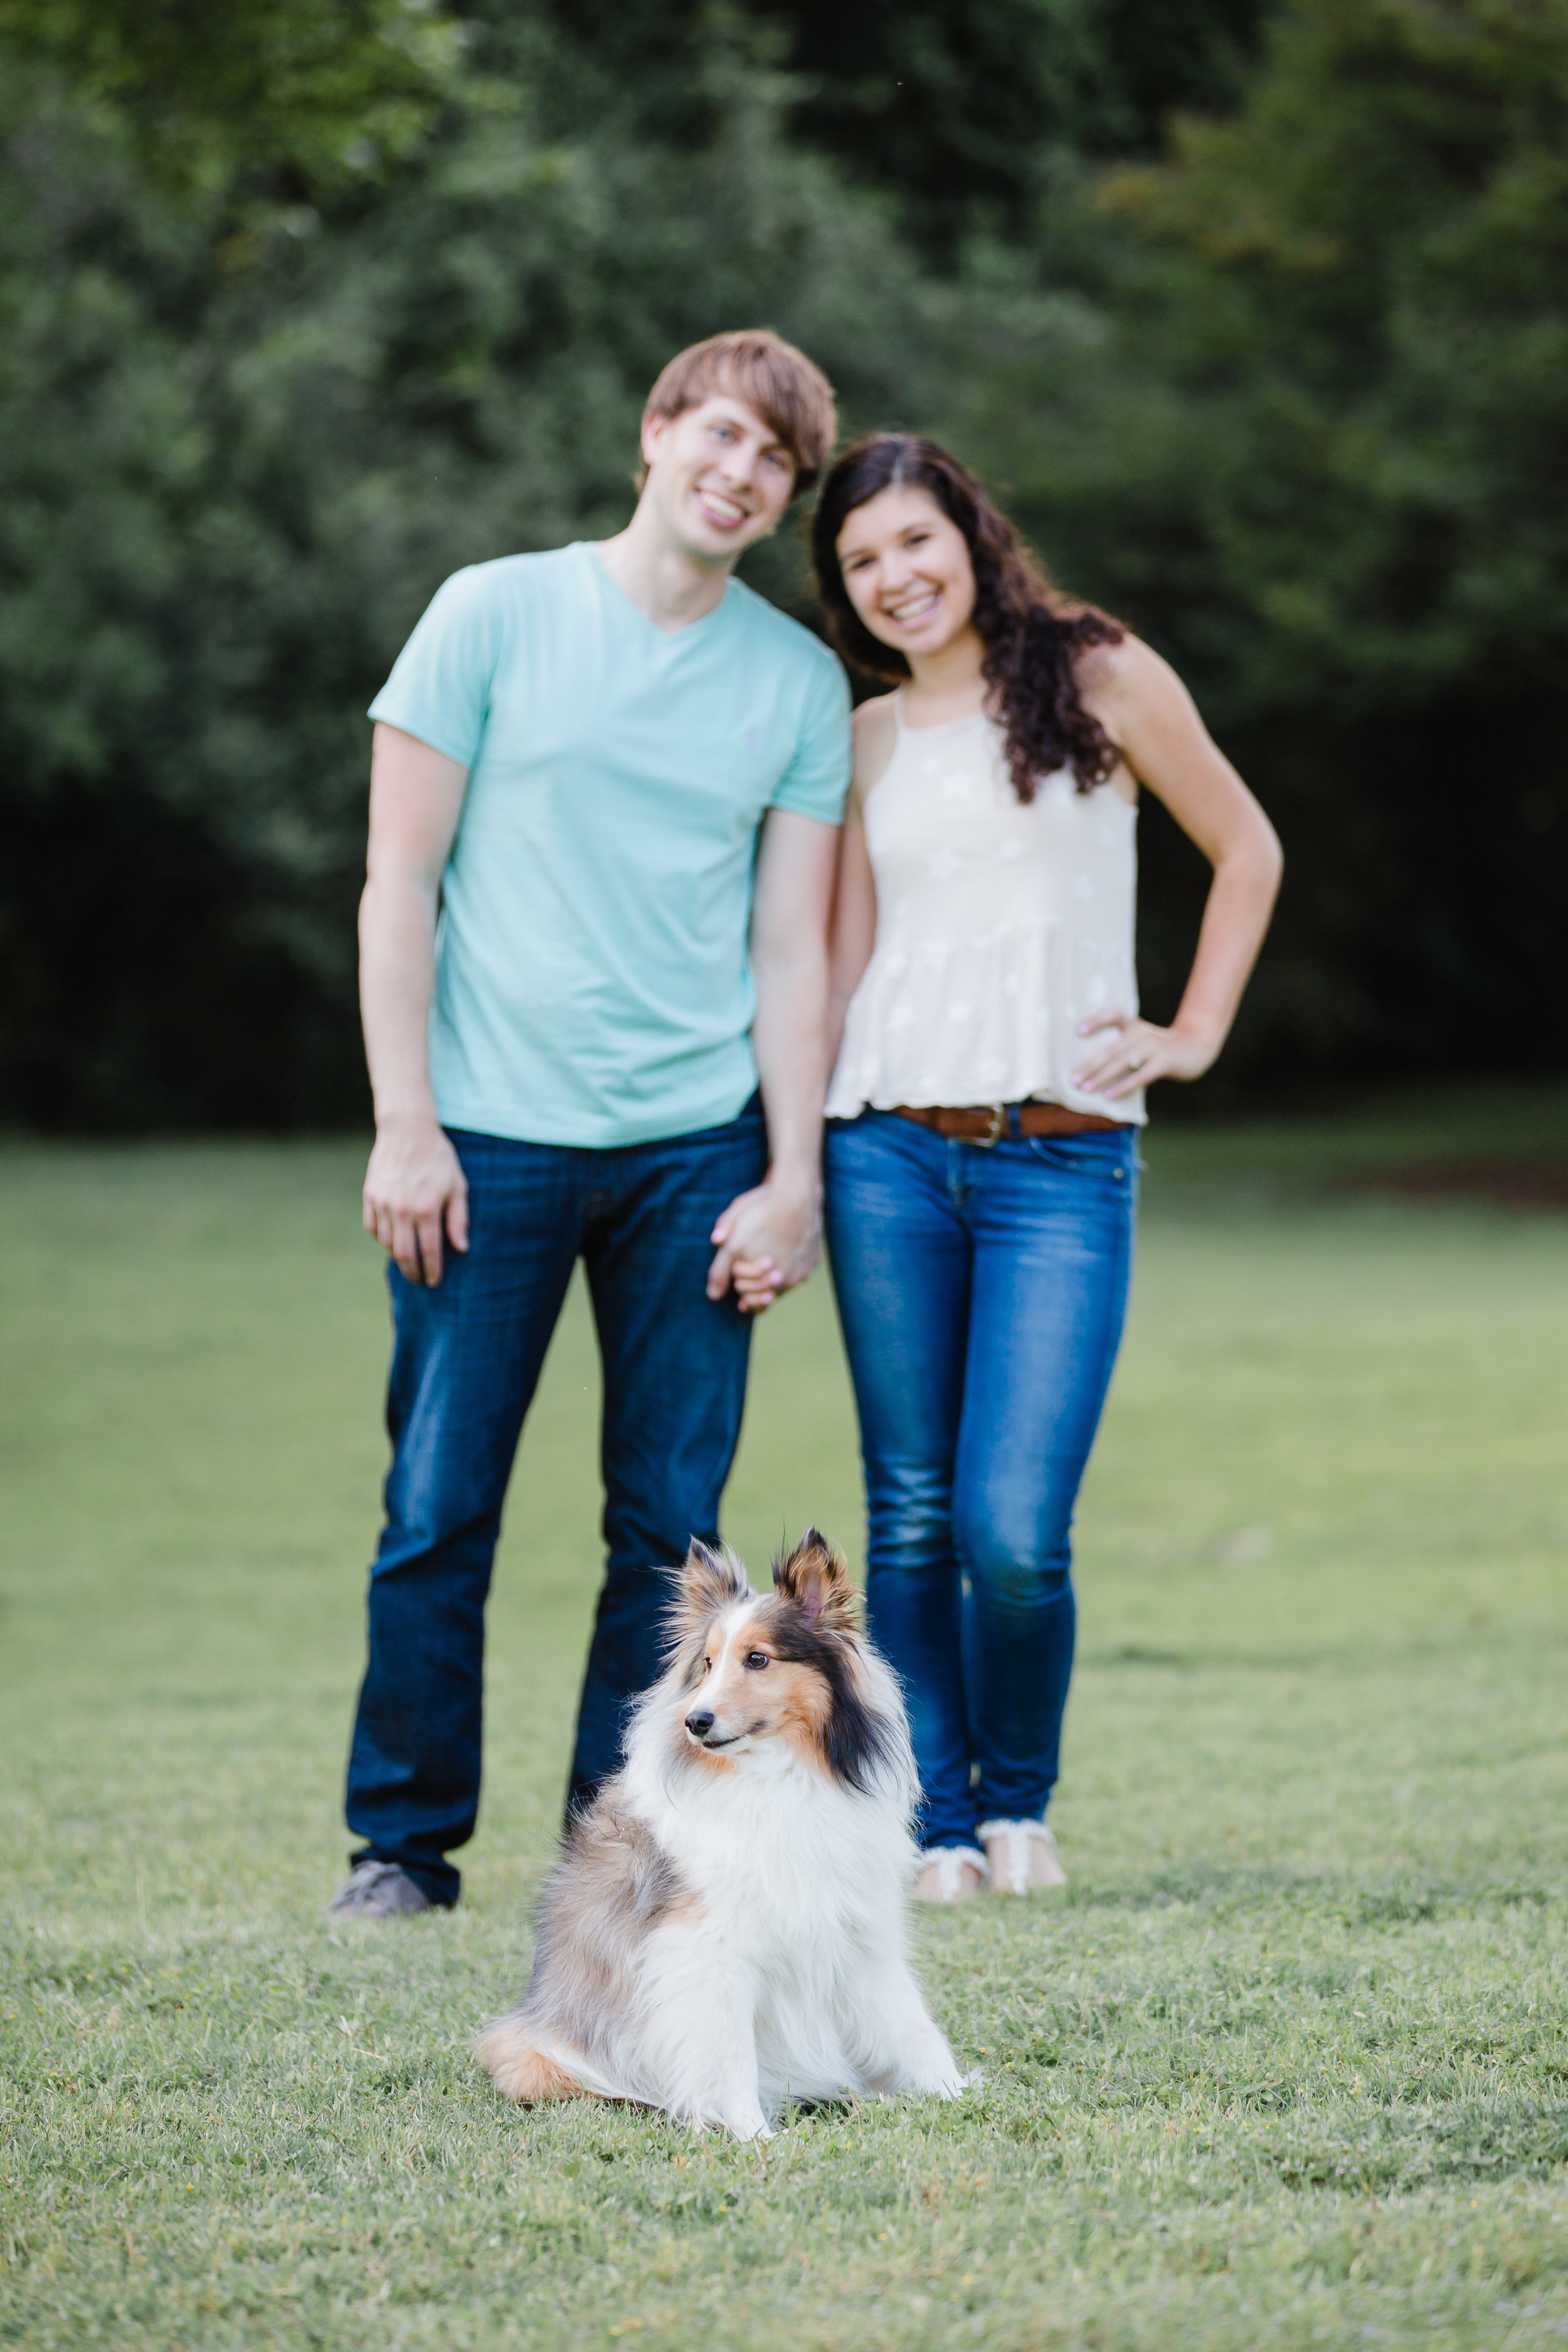 engagement session with your dog, puppy engagement session,mans best friend, dog engagement photos, engagement photos with your dog, best dallas photographer, dallas texas, wedding photography, engagement photography, couples goals,